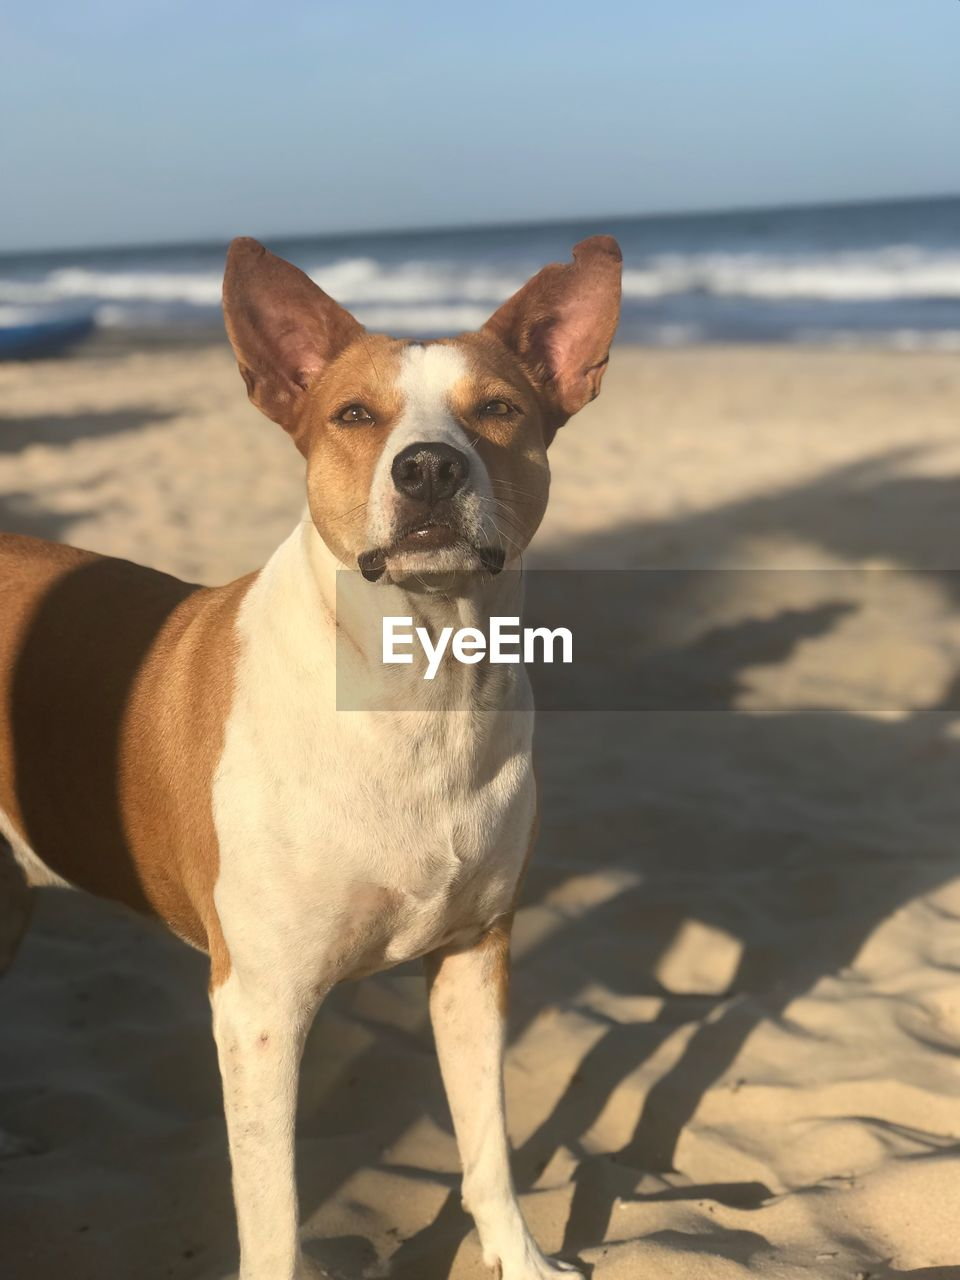 one animal, dog, canine, mammal, domestic, pets, domestic animals, land, animal themes, animal, beach, sea, sunlight, sand, vertebrate, nature, shadow, water, portrait, looking at camera, horizon over water, no people, small, purebred dog